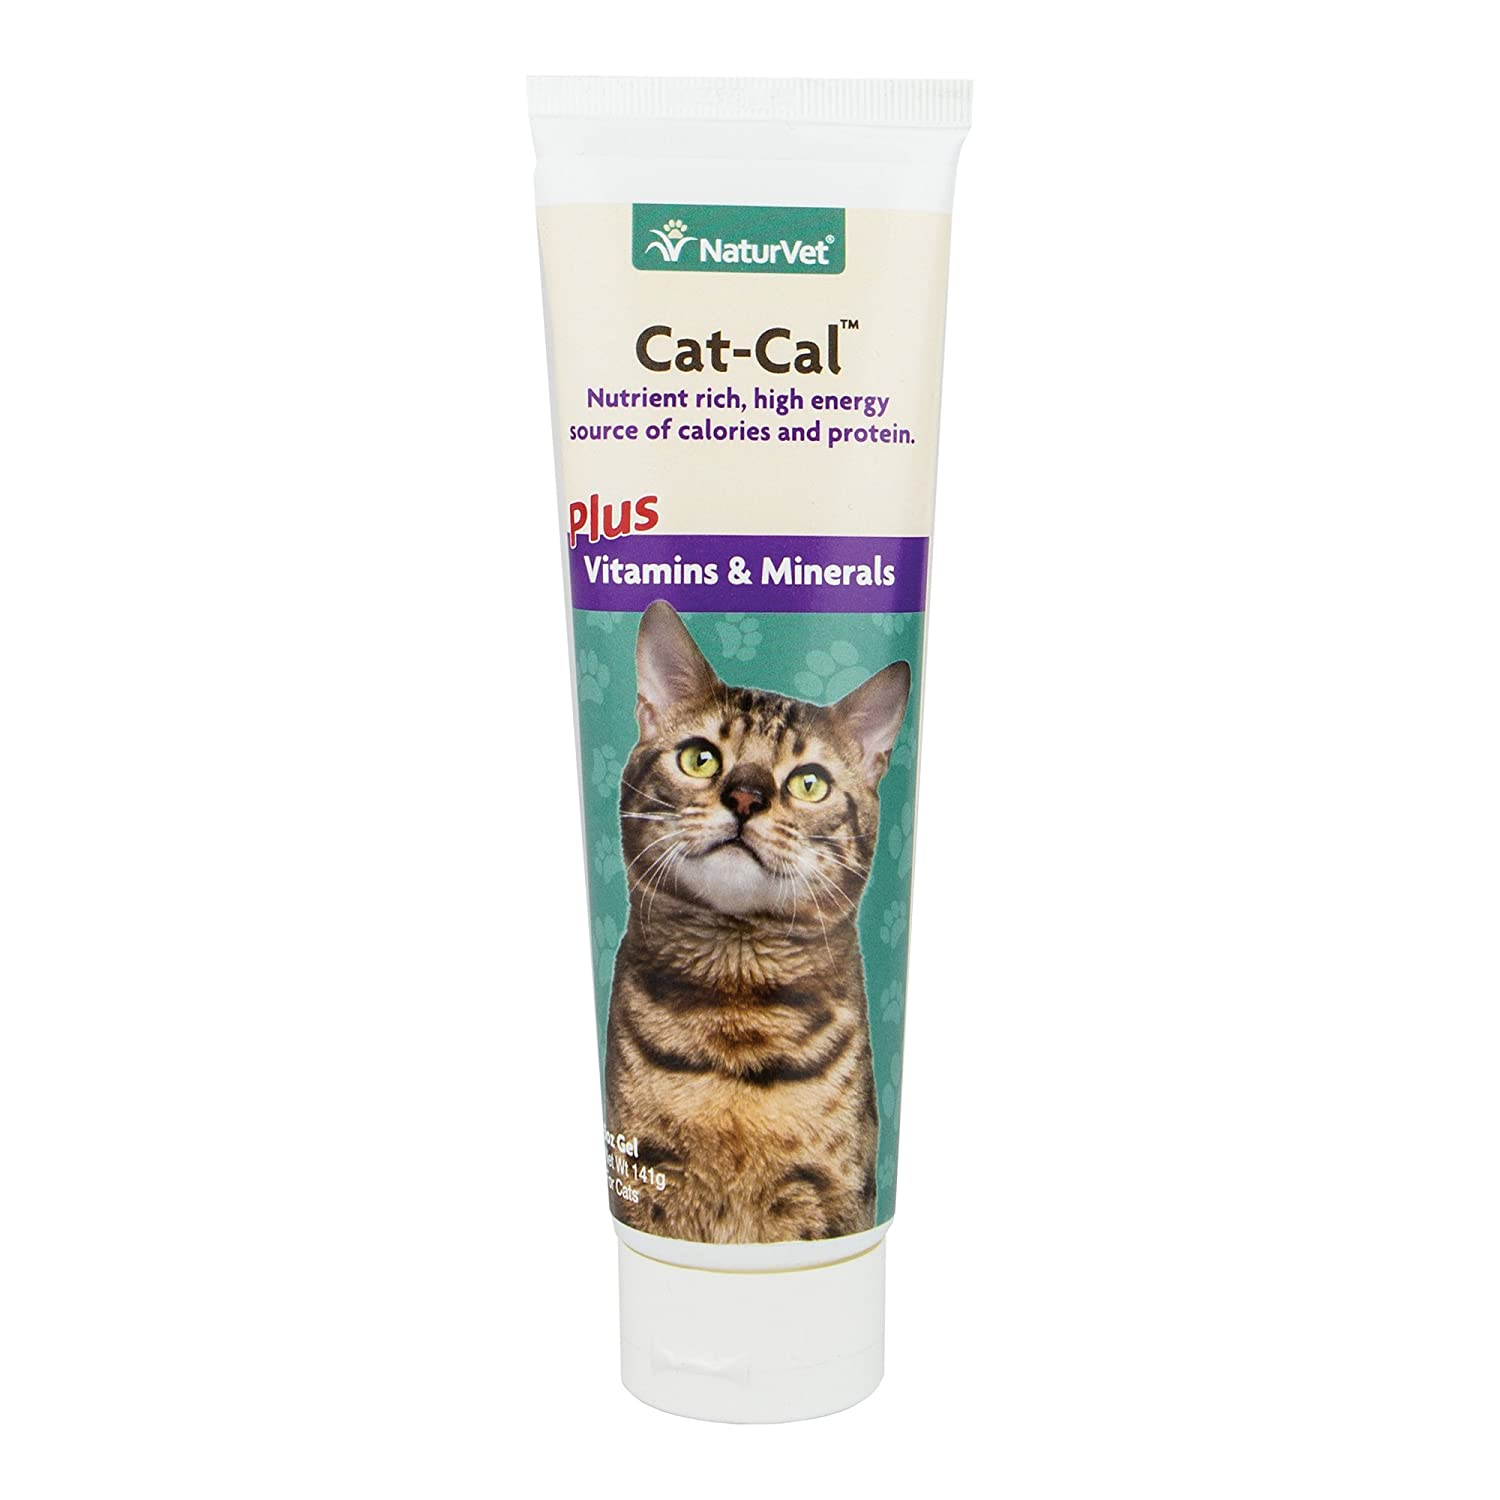 NaturVet Cat-Cal Nutritional Gel Plus Vitamins & Minerals for Cats, 5 oz Gel, Made in USA AniPet Animal Supply 79900248